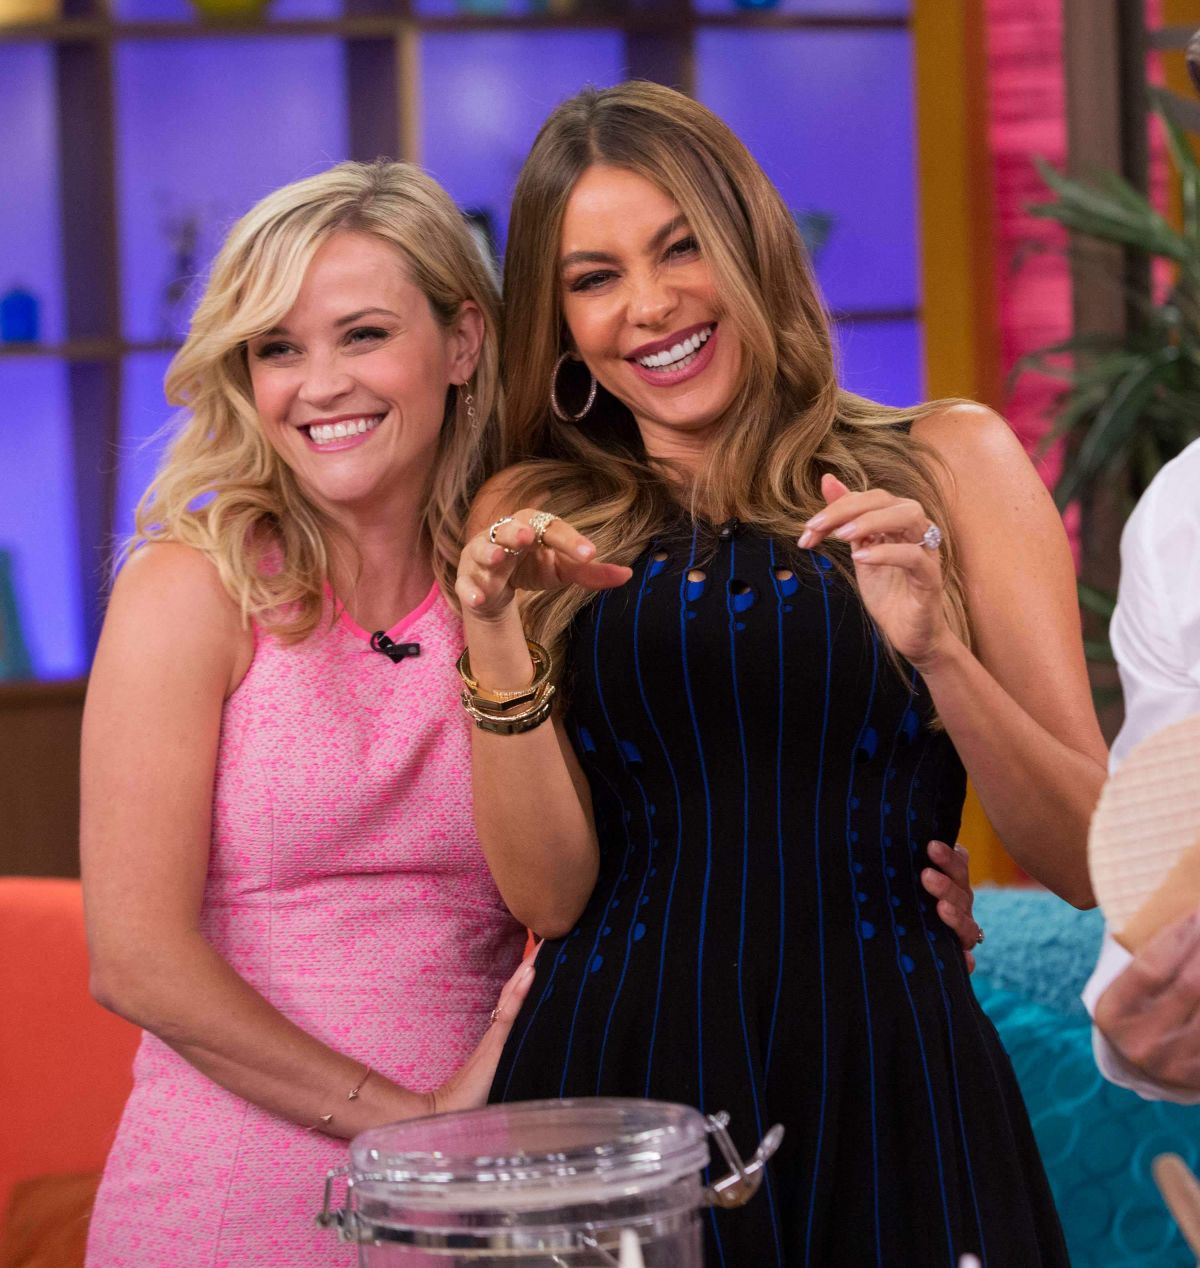 REESE WITHERSPOON and SOFIA VERGARA at Univision